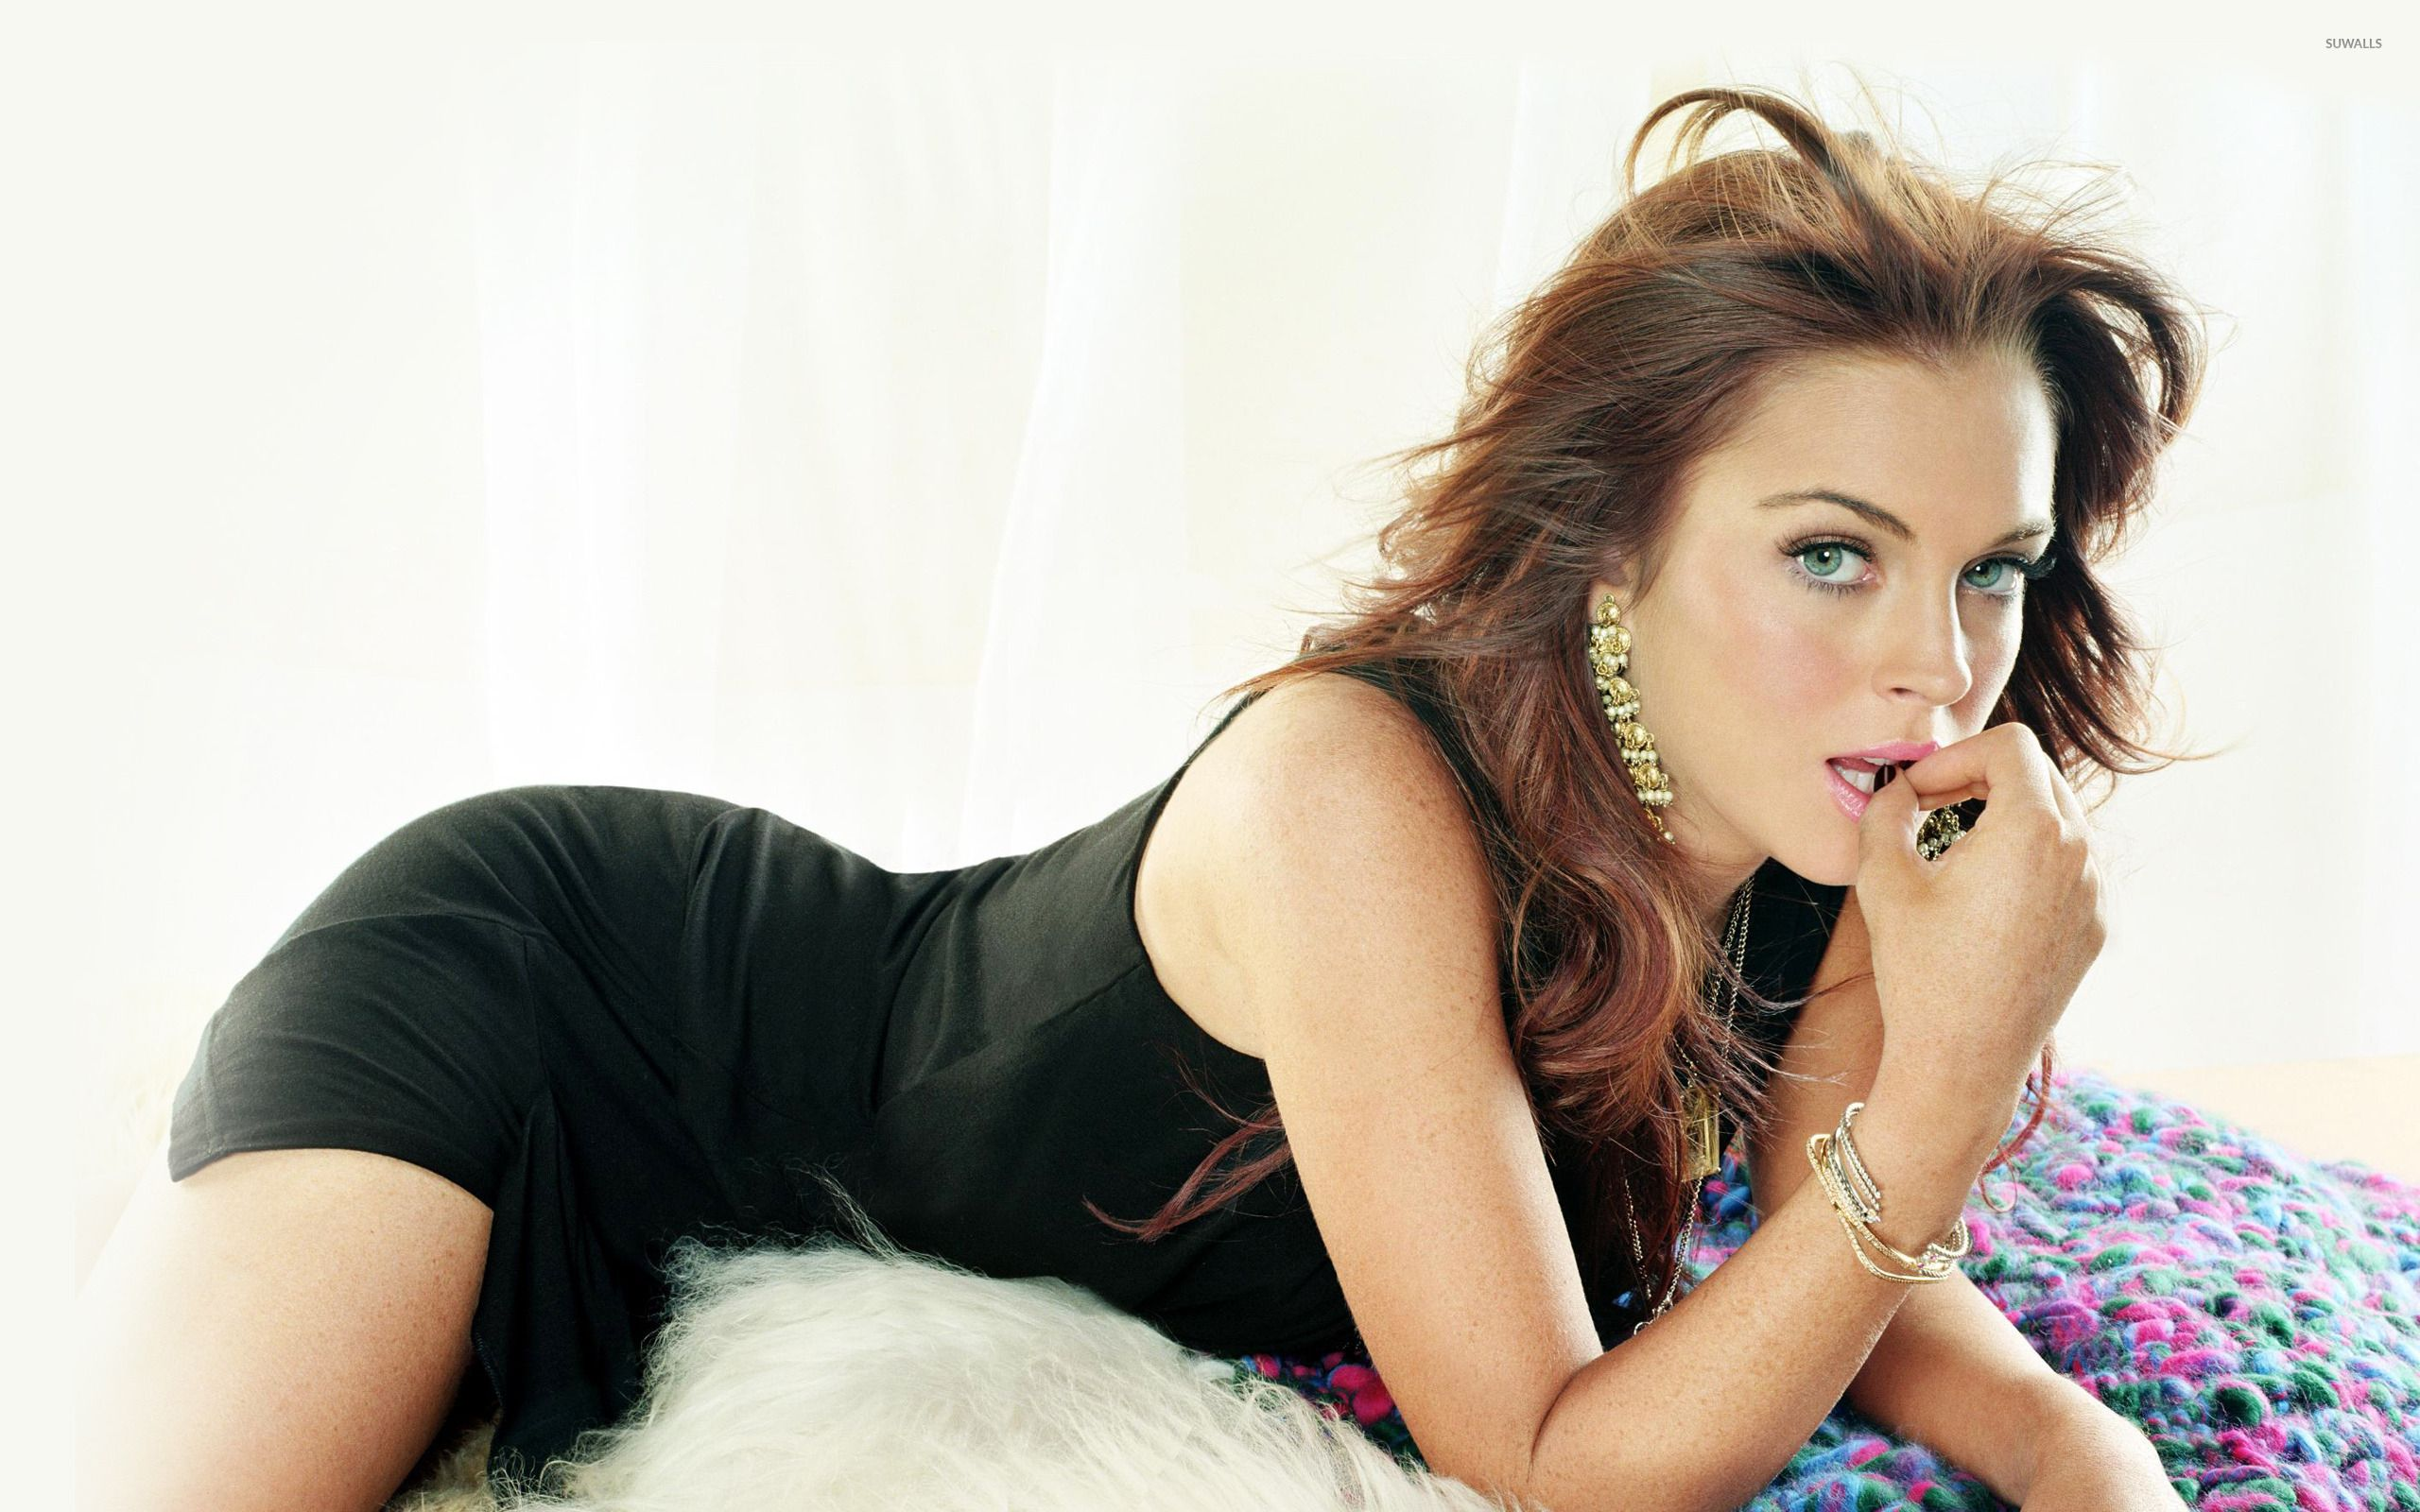 lindsay lohan wallpapers high quality download free | wallpapers